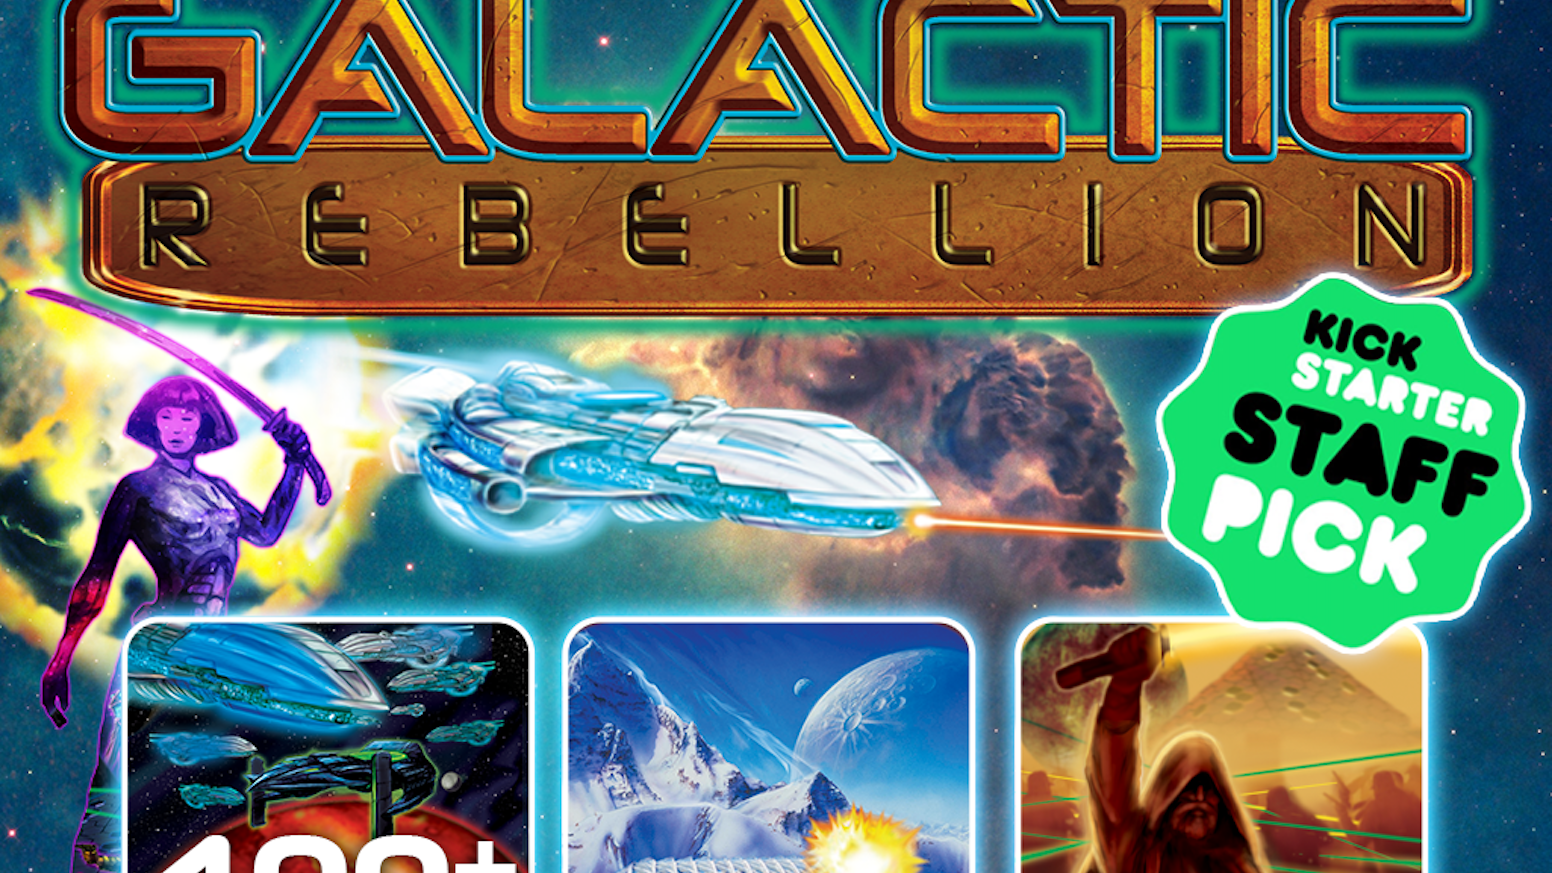 Fight for Galactic Control as a Rebel Leader and Mobilize your Faction to Defeat the Empire!